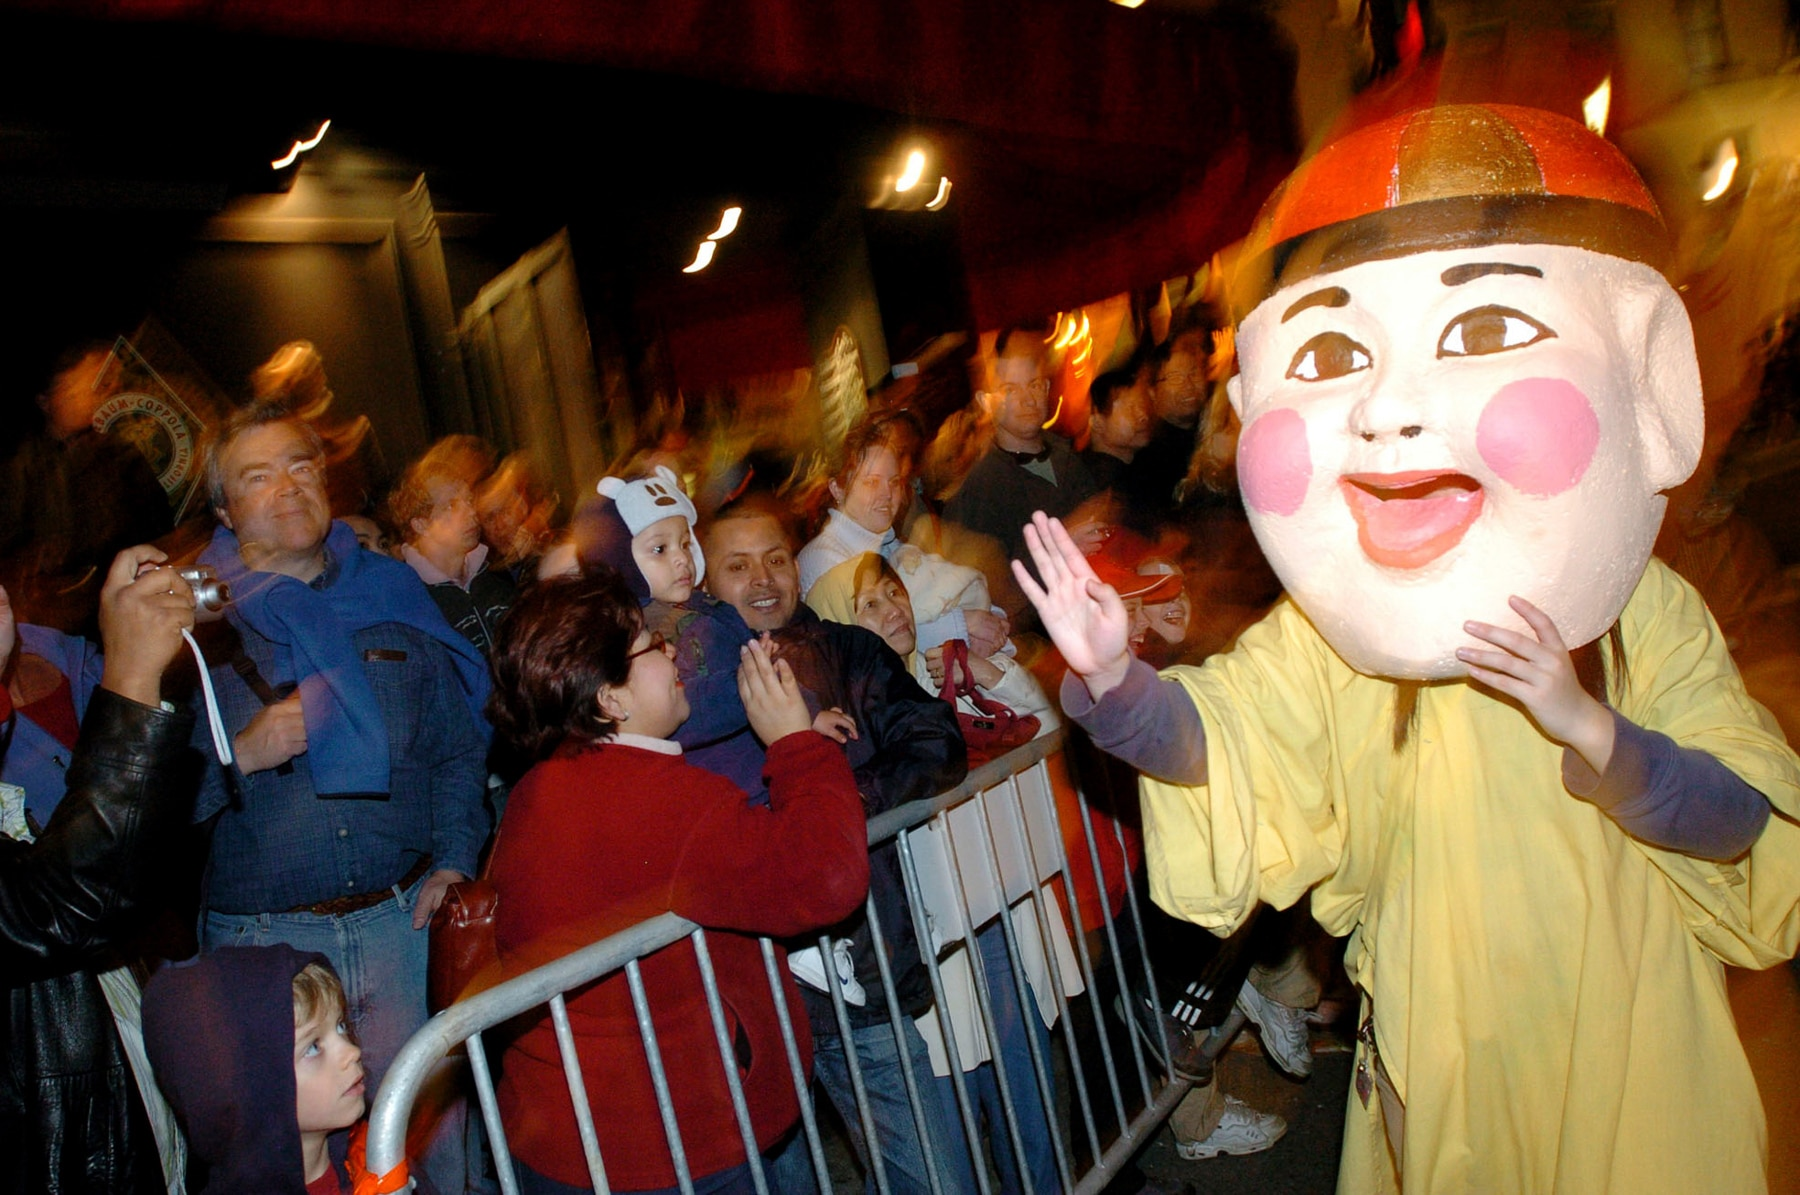 Performer in large face mask waving to crowd behind barricade on street (© AP Images)